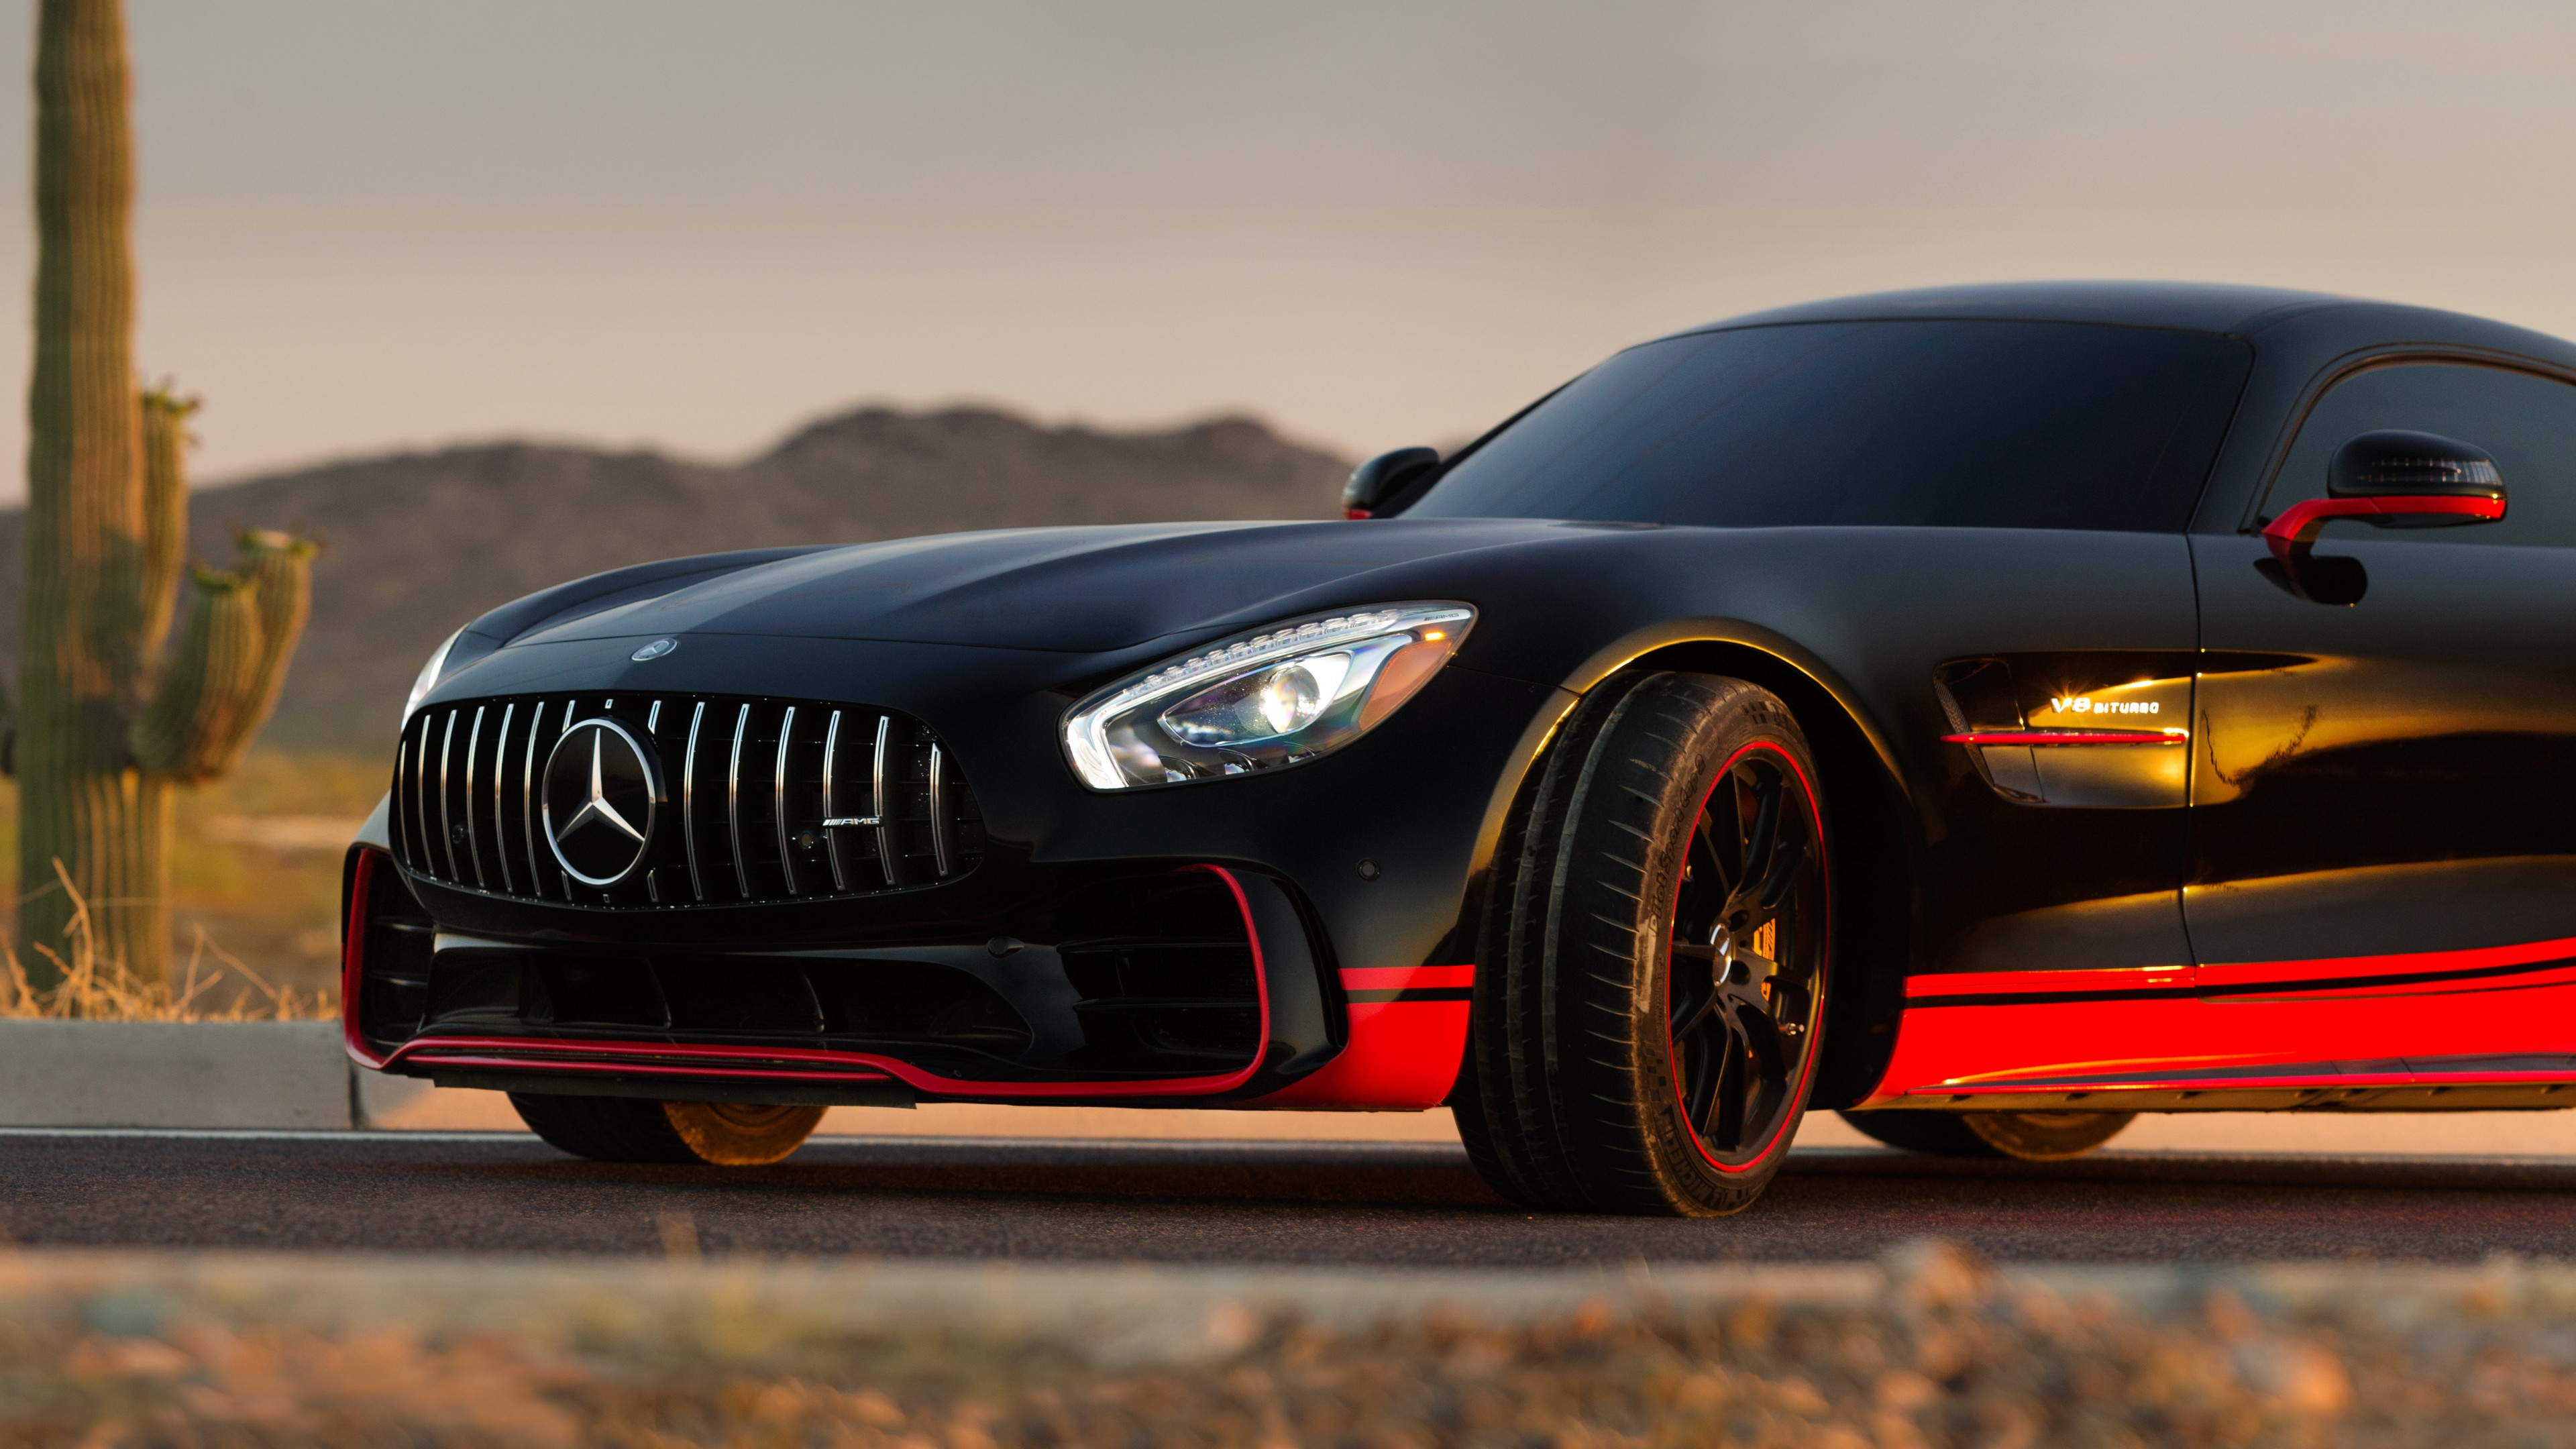 4k Car Wallpapers For Pc Wallpaper Mercedes Benz Amg Gt R Drift Transformers The